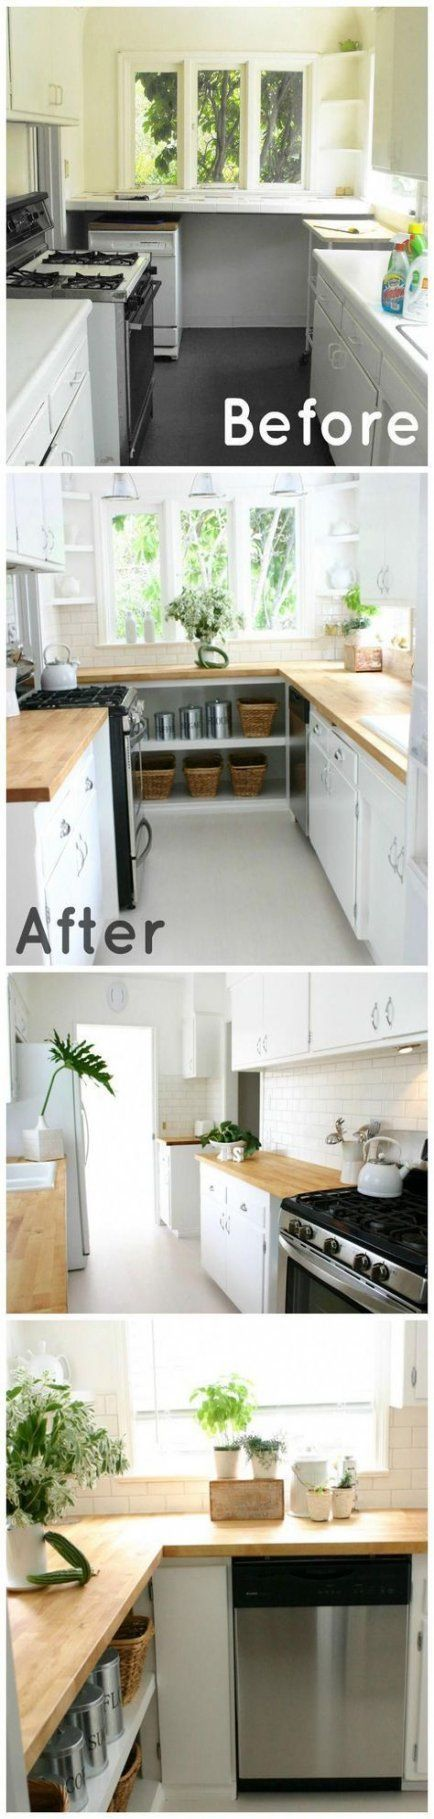 1950s kitchen remodel before after light fixtures 37 ideas ...